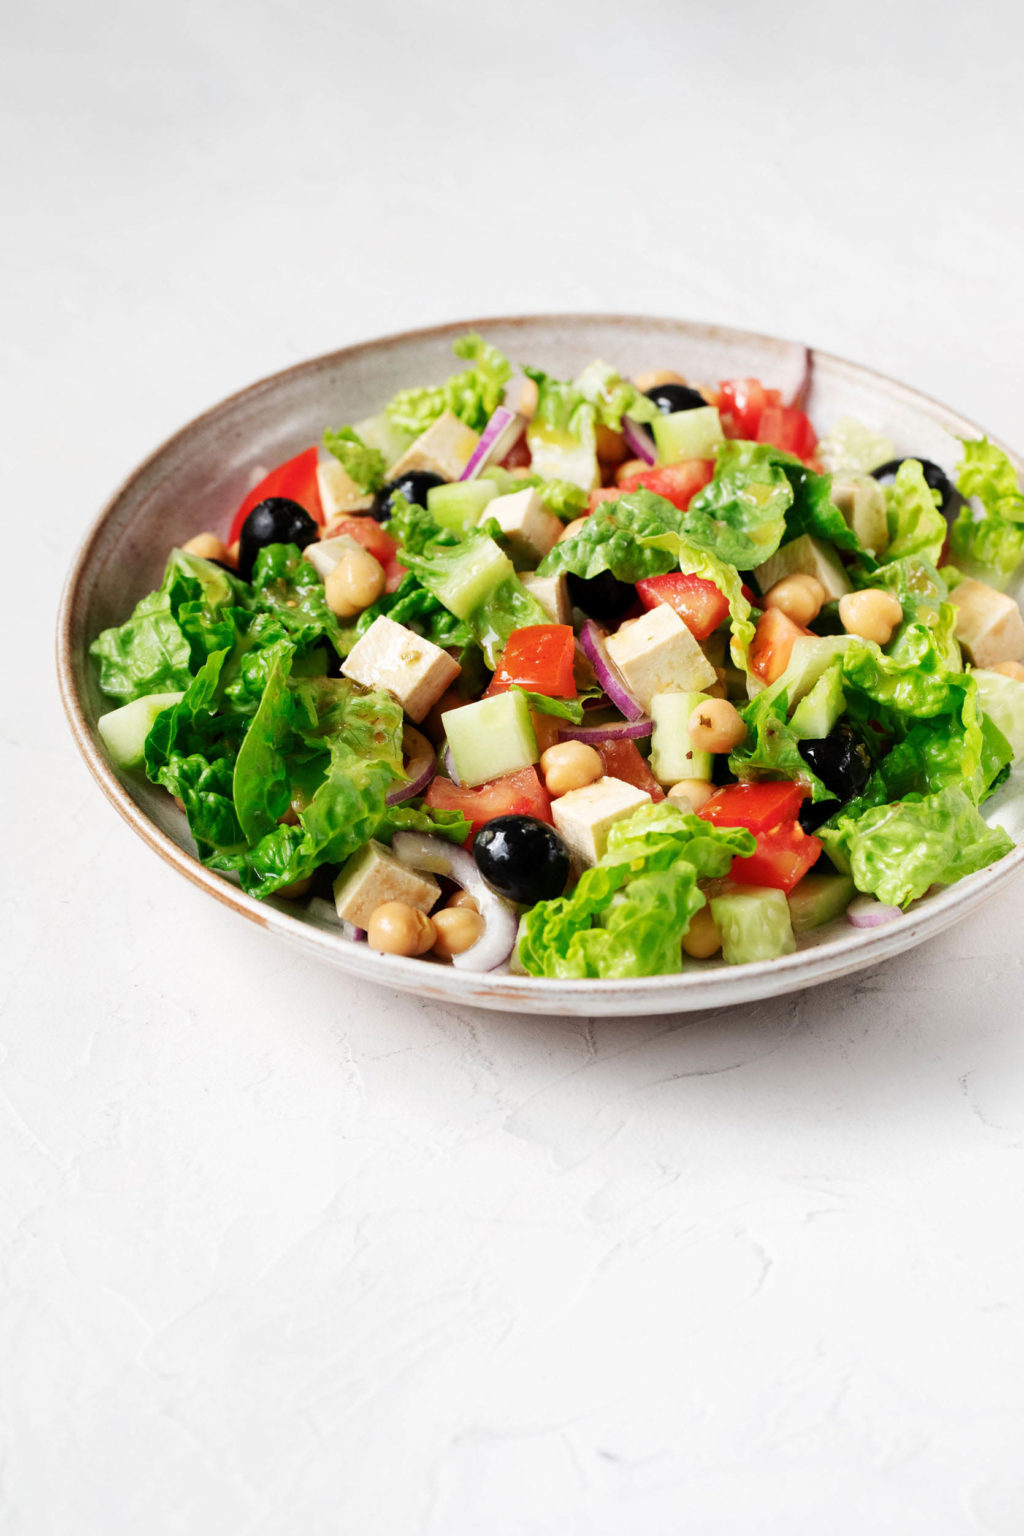 A vegan Greek salad, prepared with tofu feta and olives, is served in a large, round bowl. Crisp green romaine lettuce is folded into the salad.